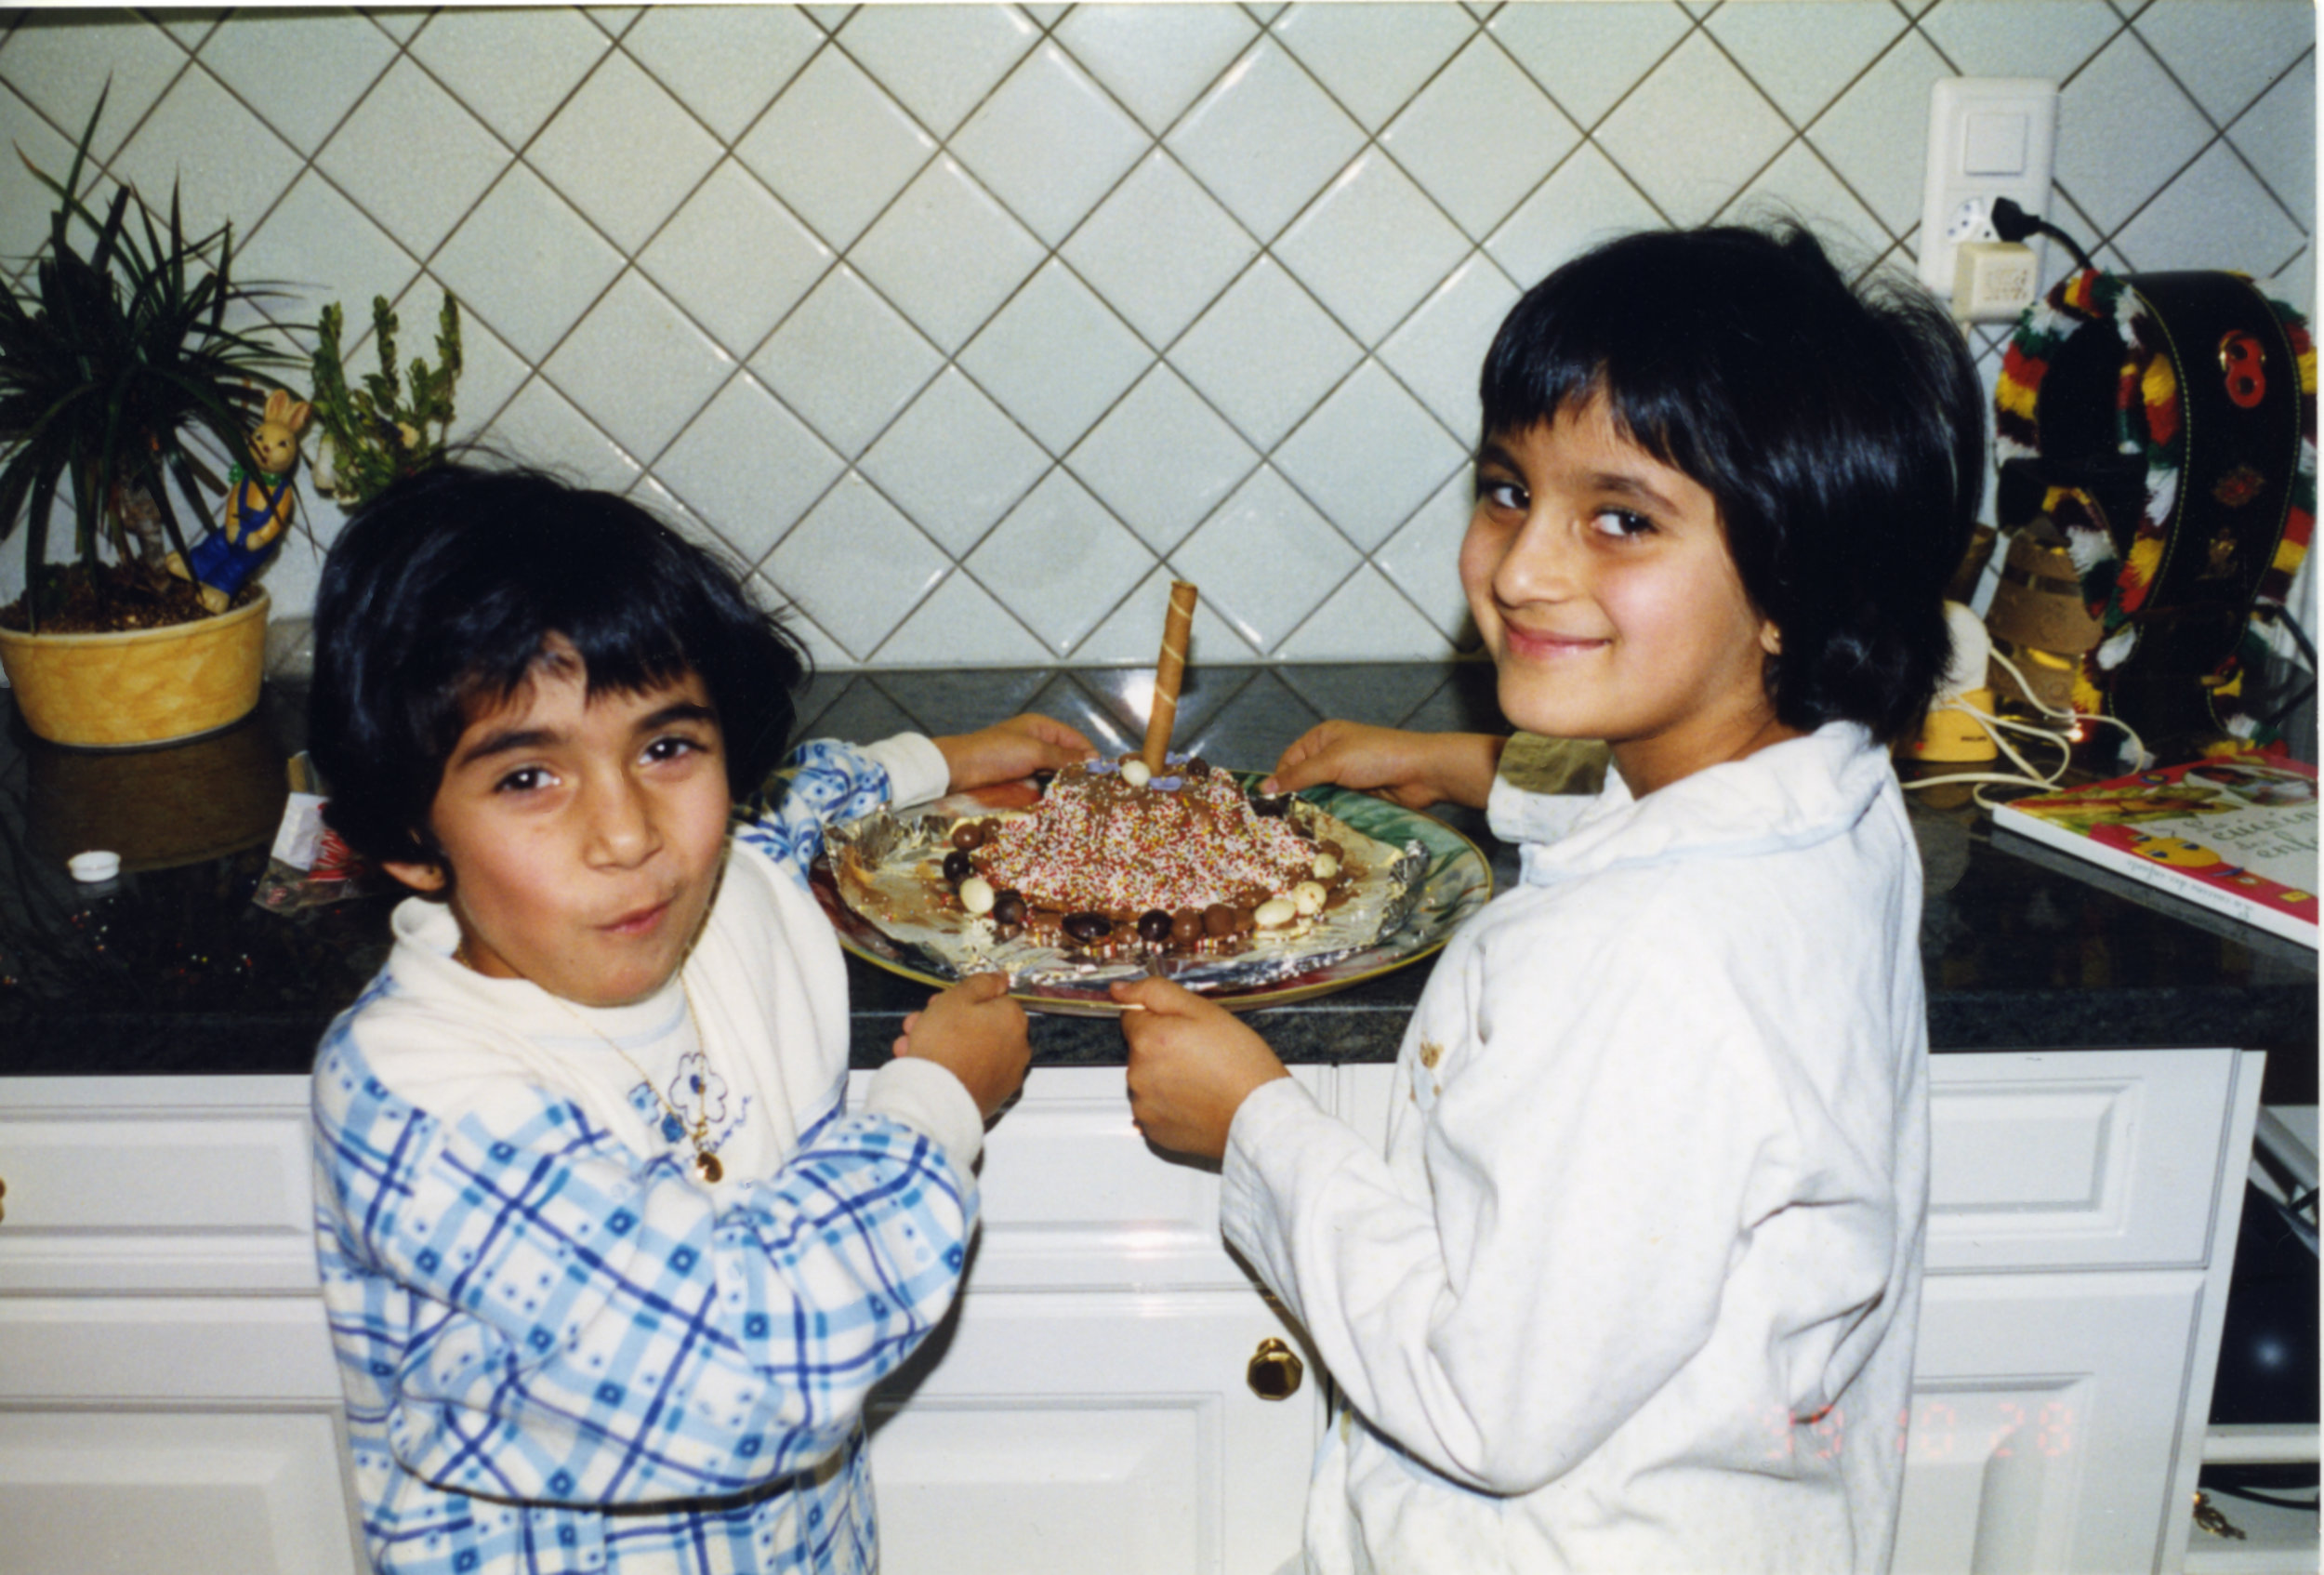 My sister and I baking a cake in 1997